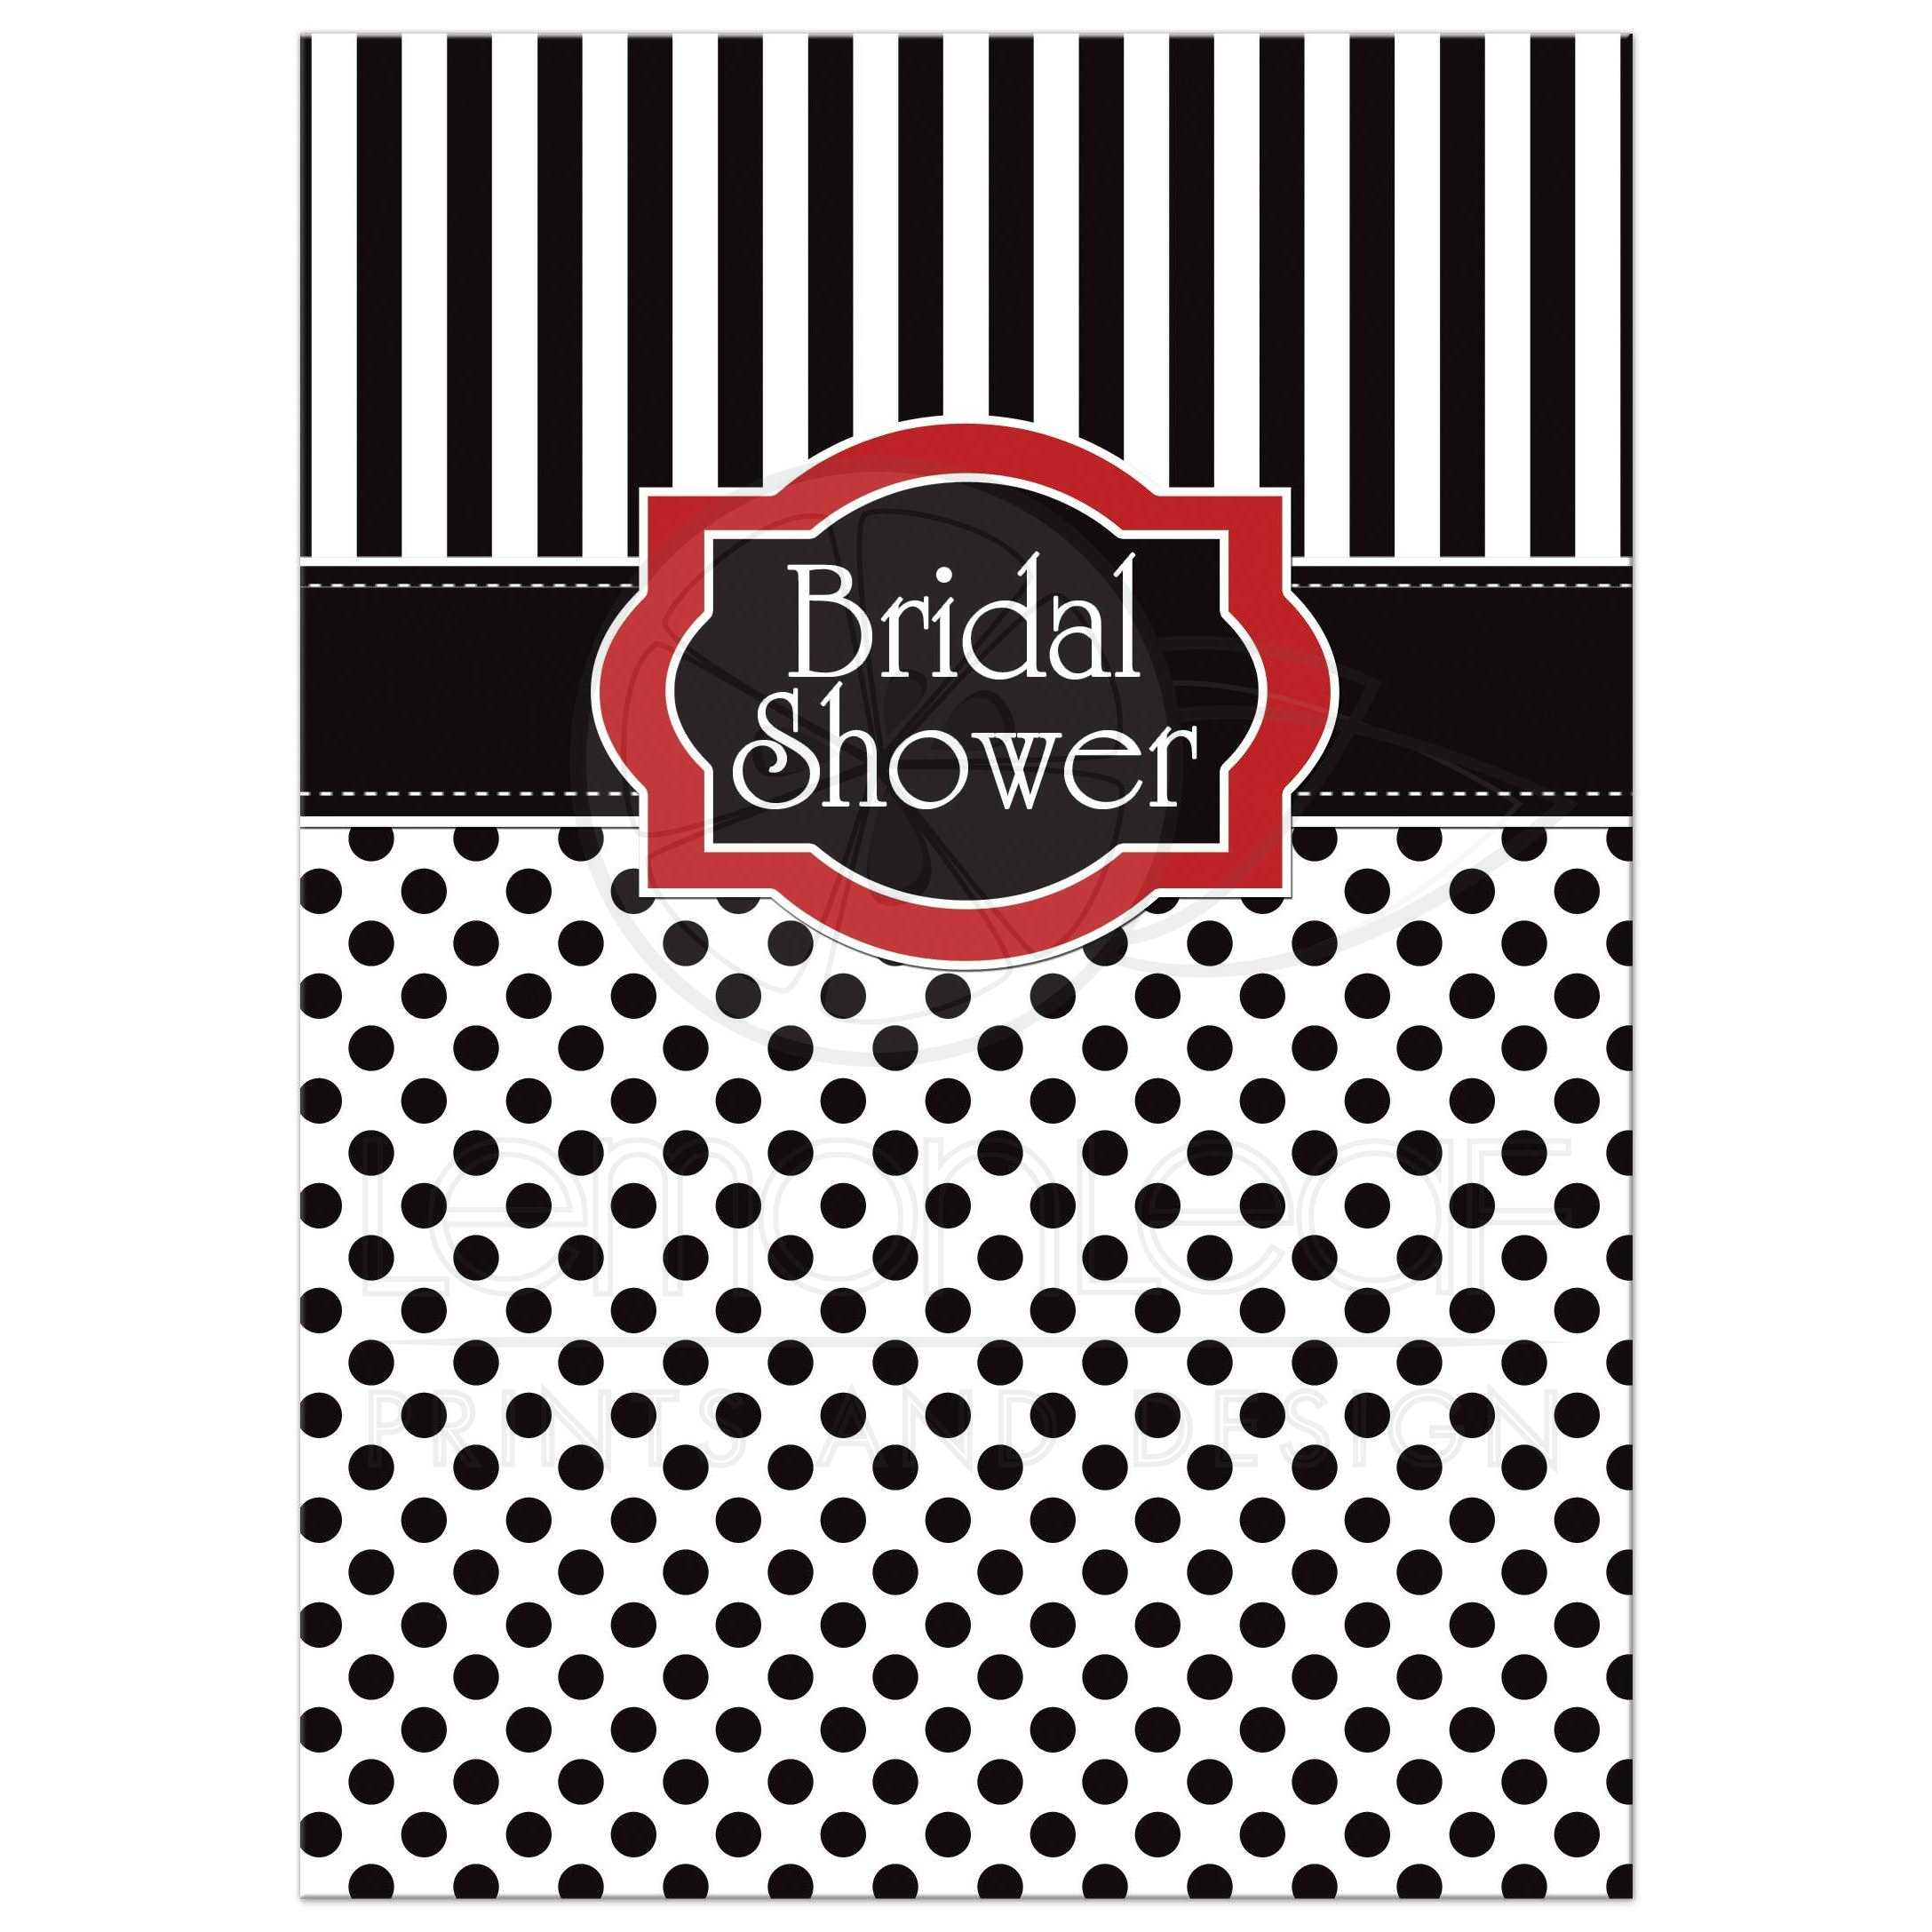 bridal shower invitation black white red polka dots